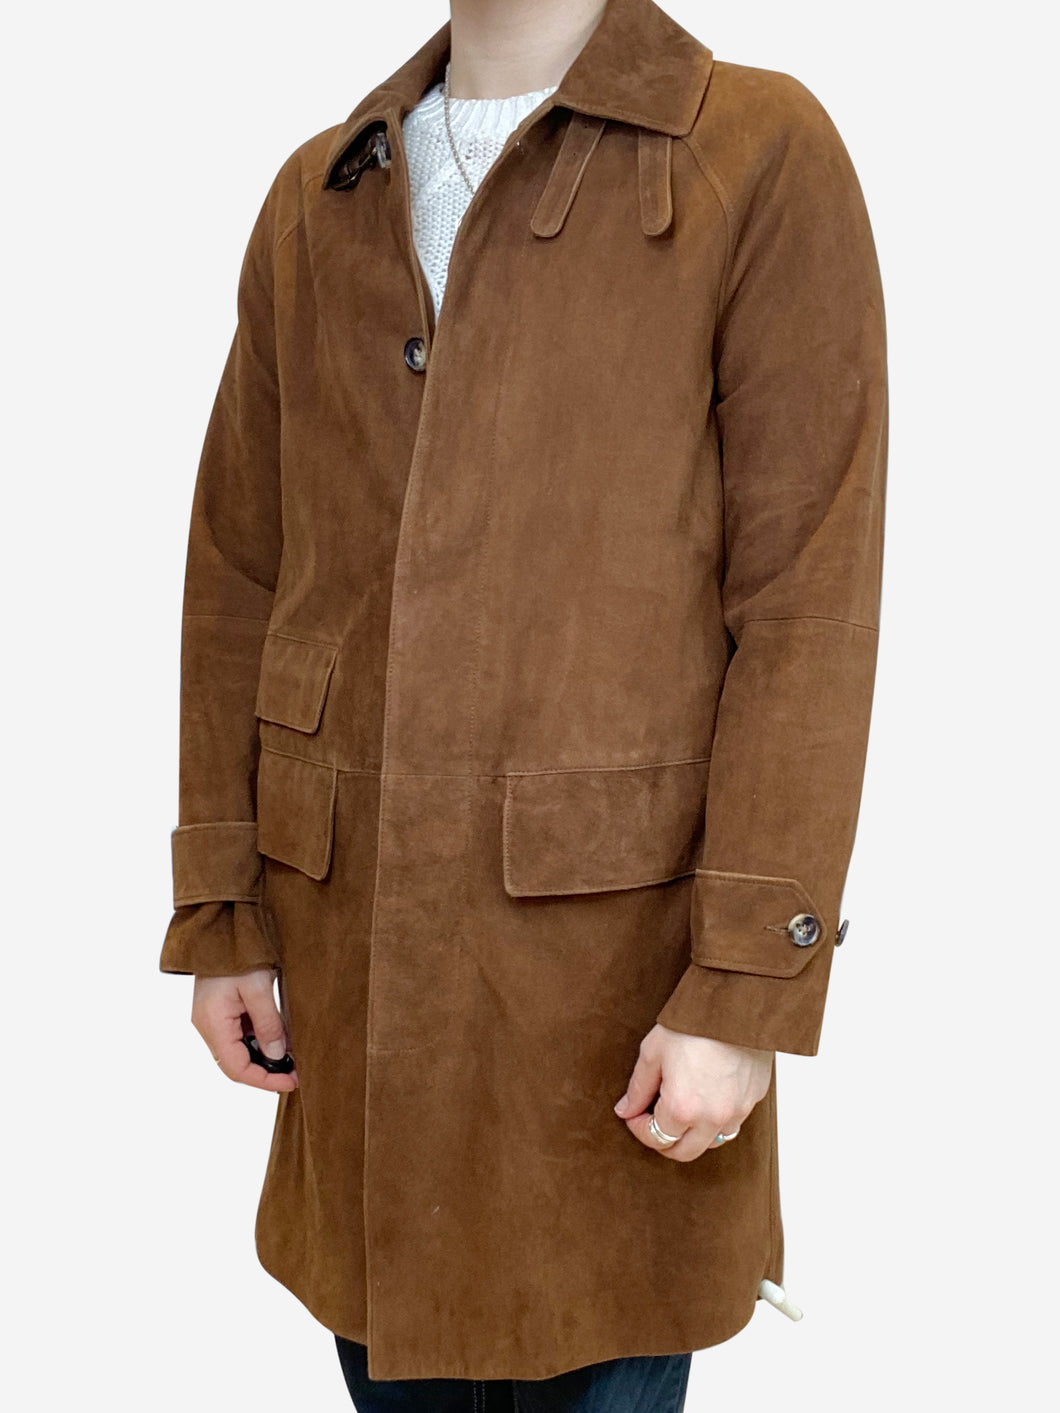 Brown suede long coat - size S